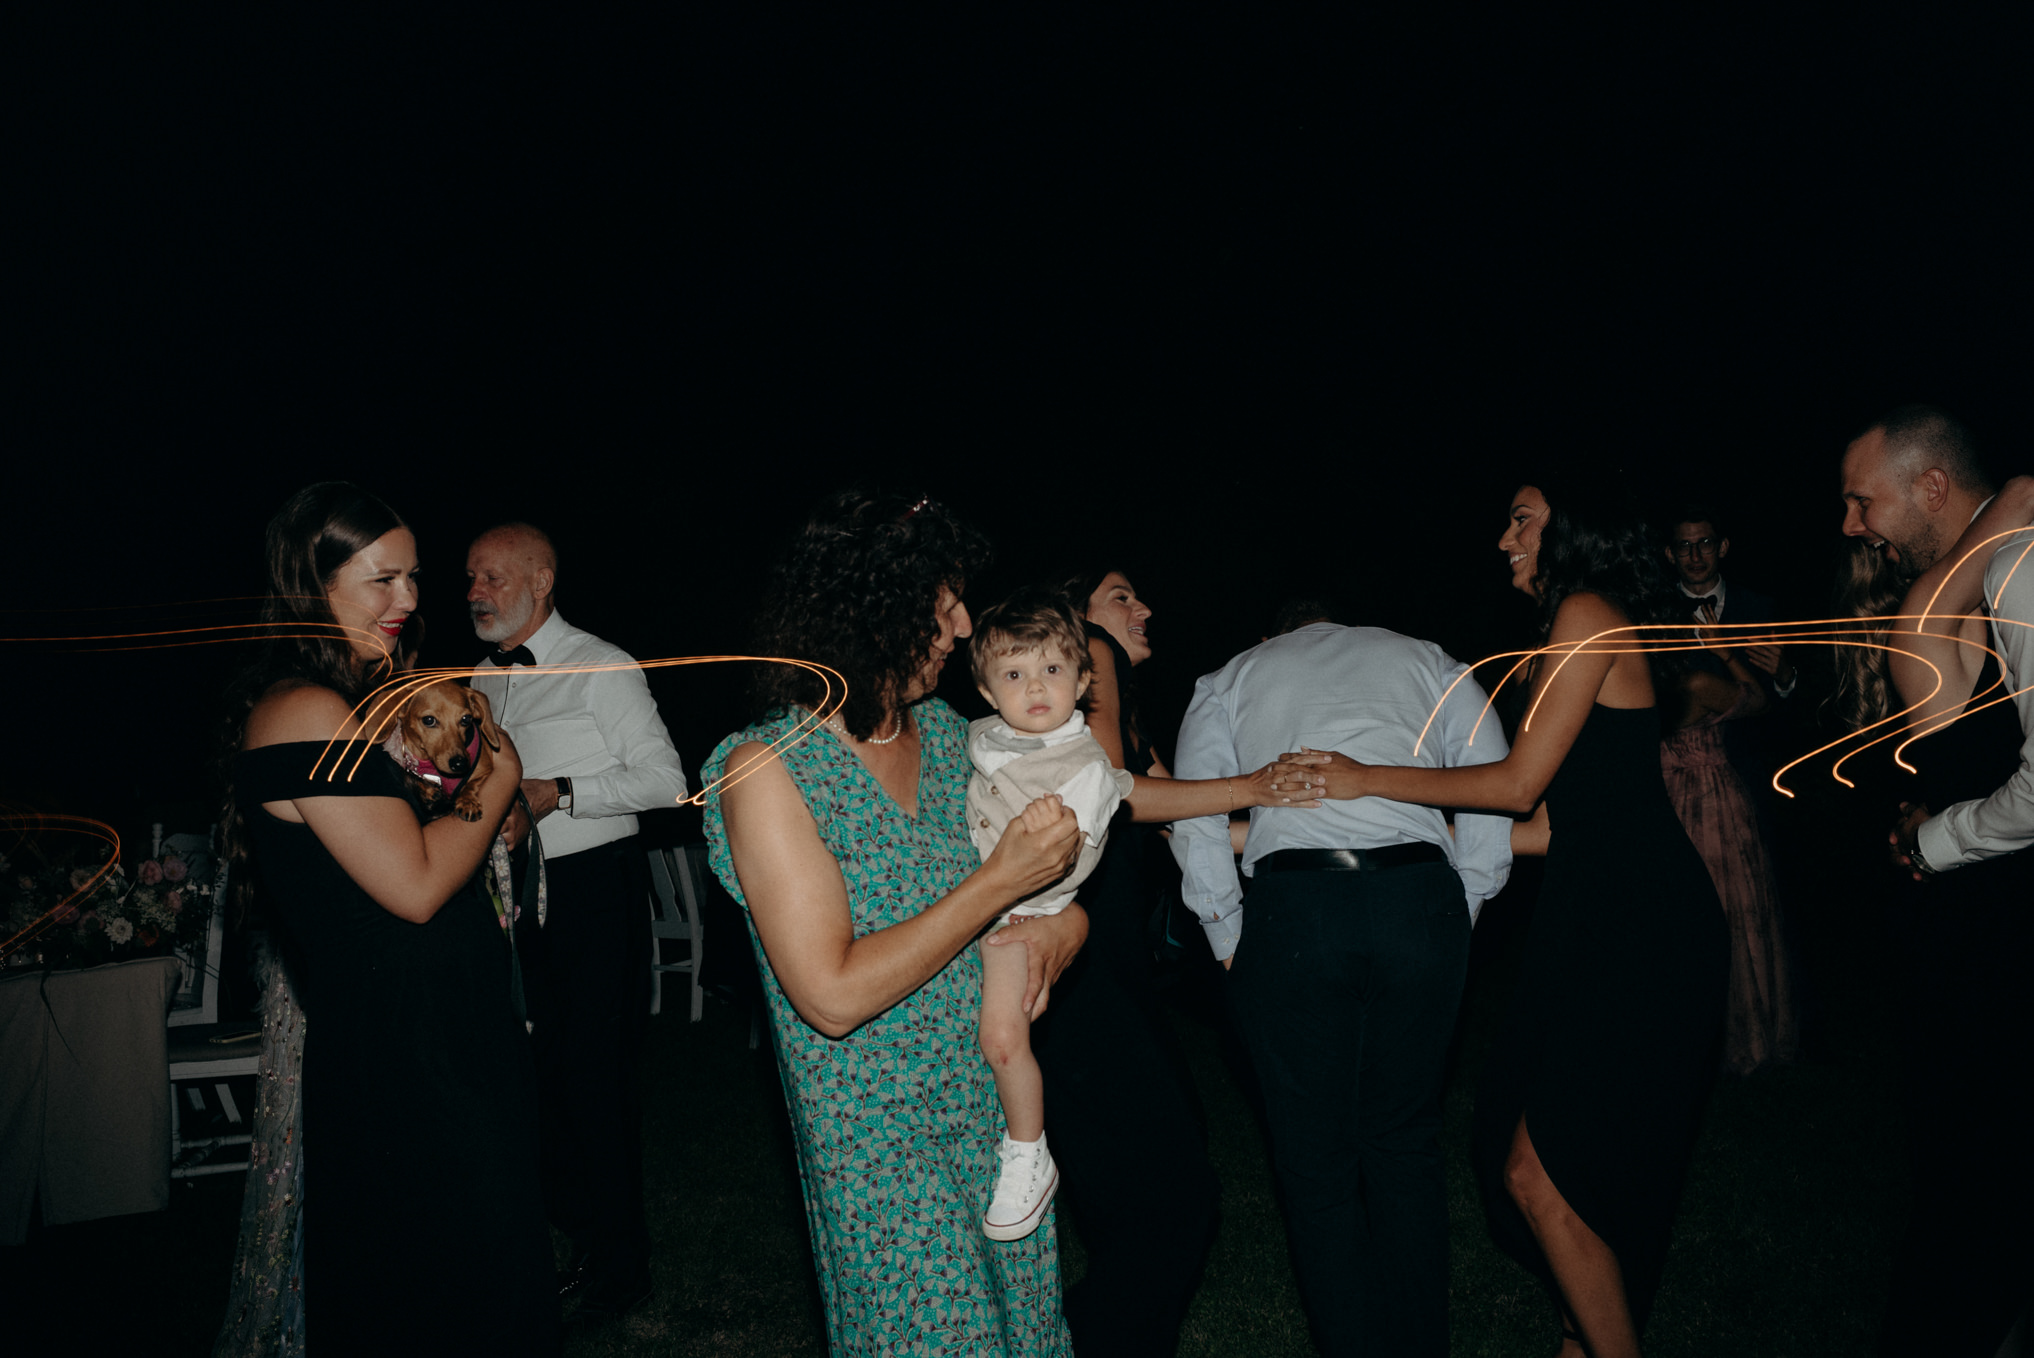 guests dancing outside at outdoor wedding in Ontario